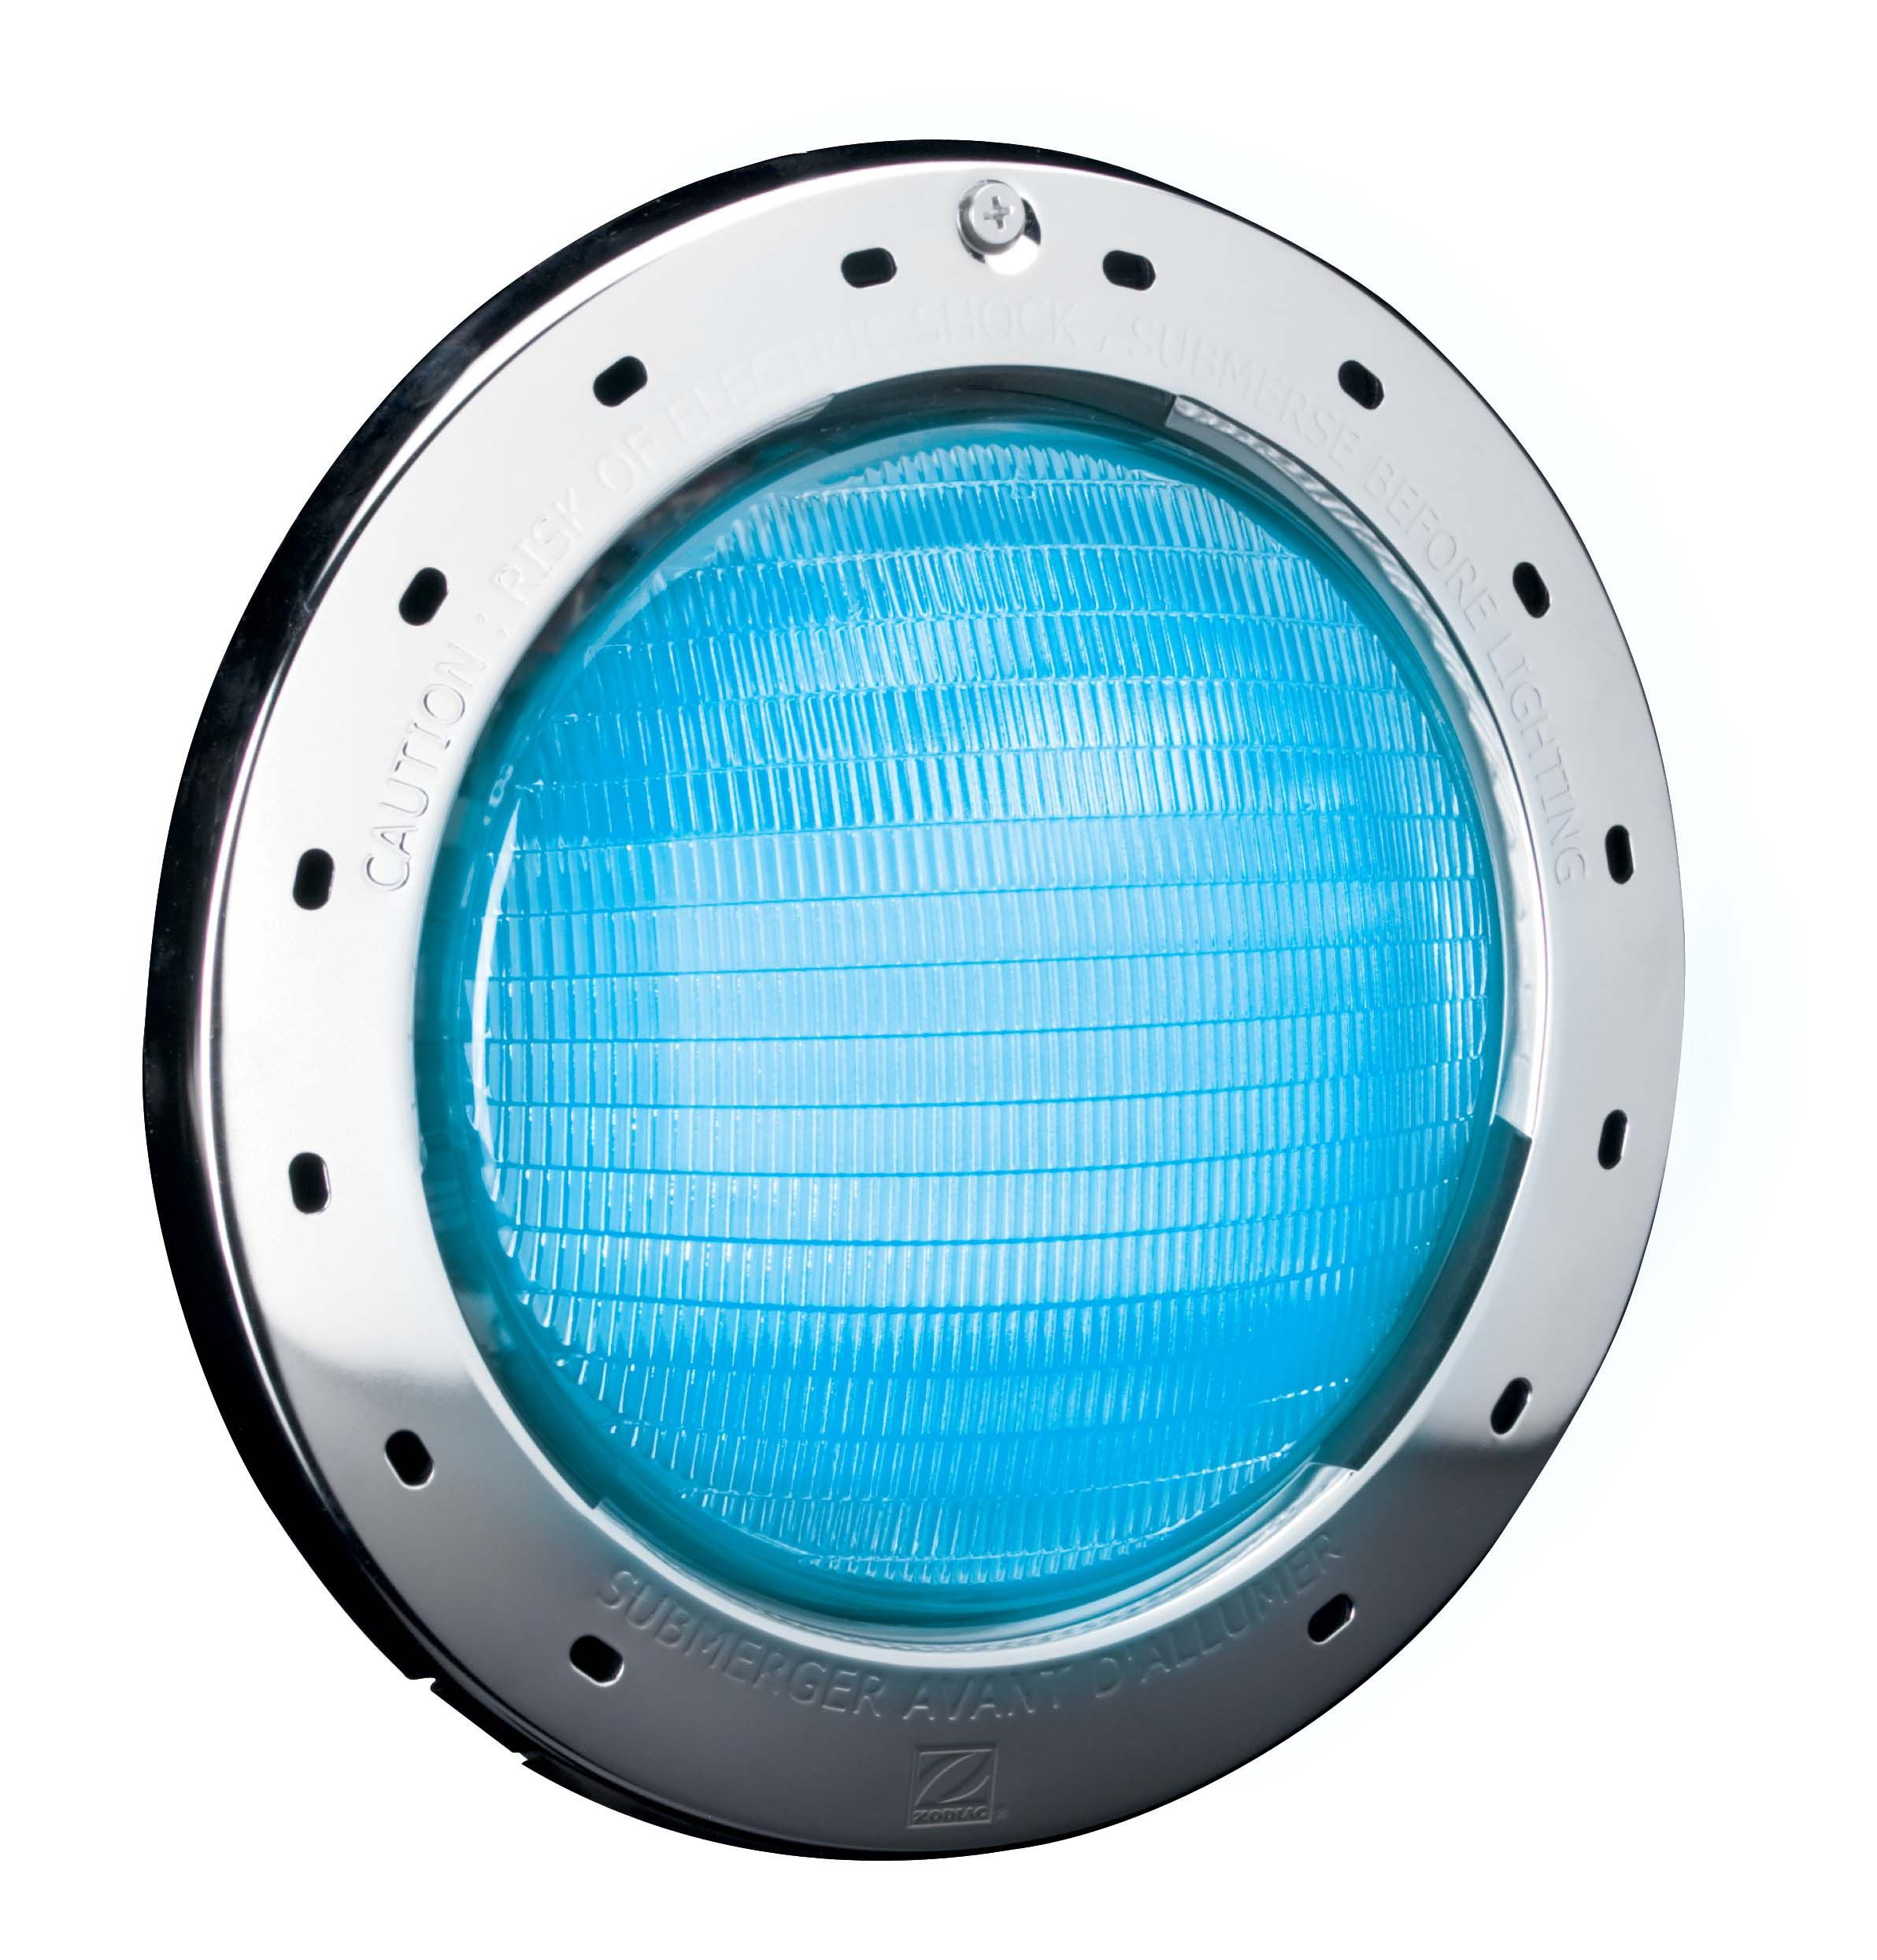 Led pool light lighting apparatuses that has any kind of effect led pool light lighting apparatuses that has any kind of effect arubaitofo Image collections